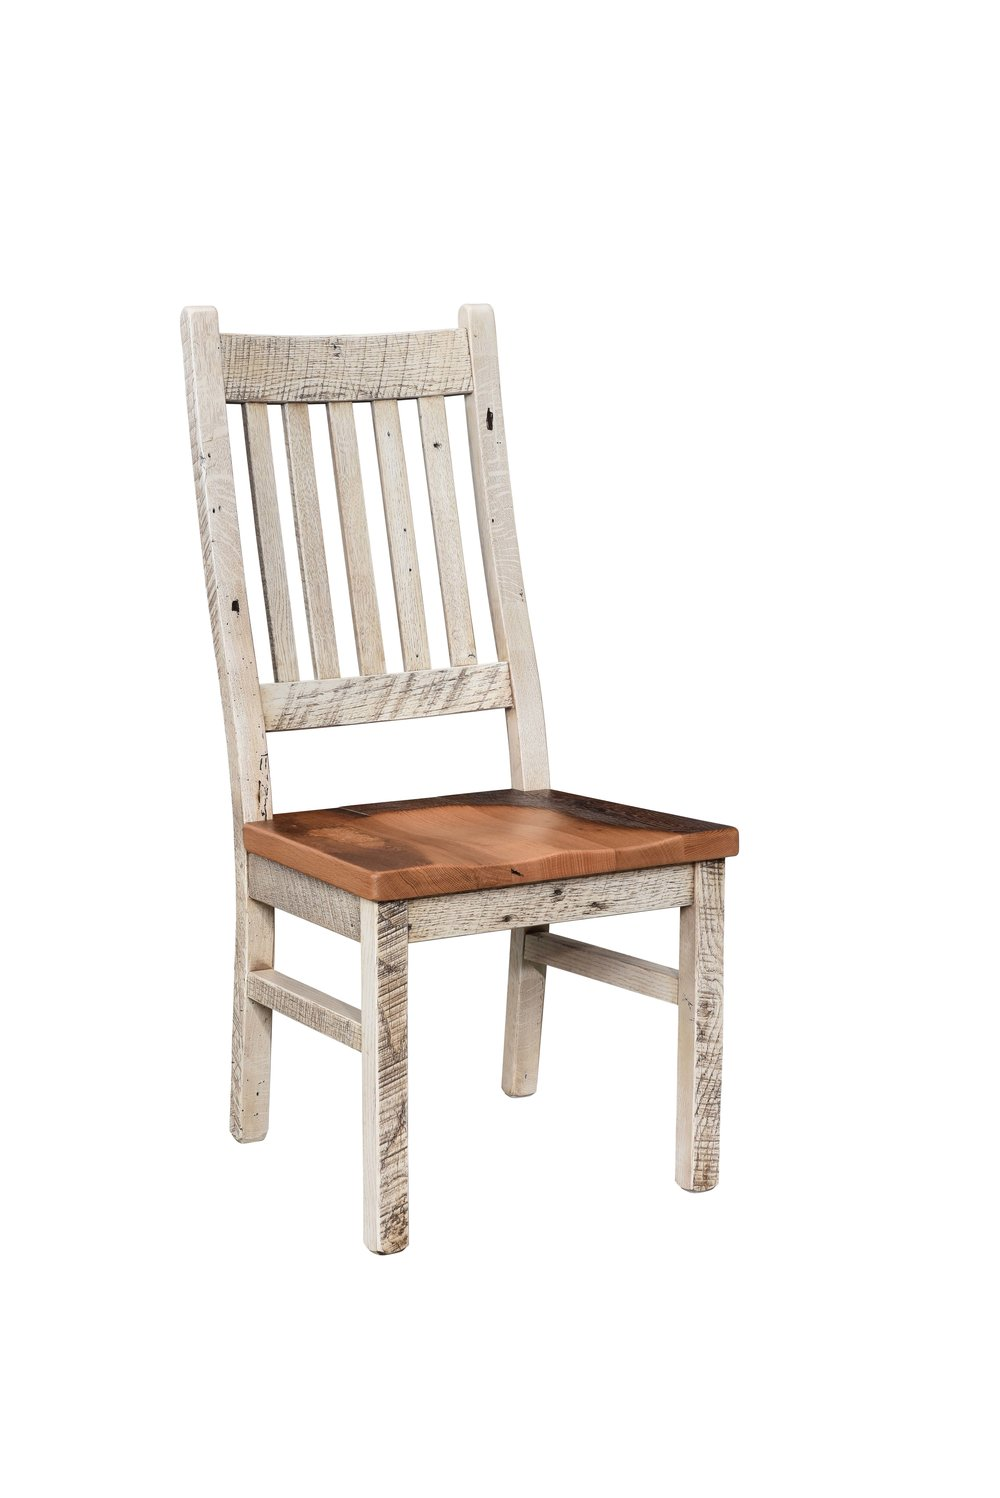 243-FHSC Farmhouse Side Chair - Sept2017Cat-p64 Top.jpg